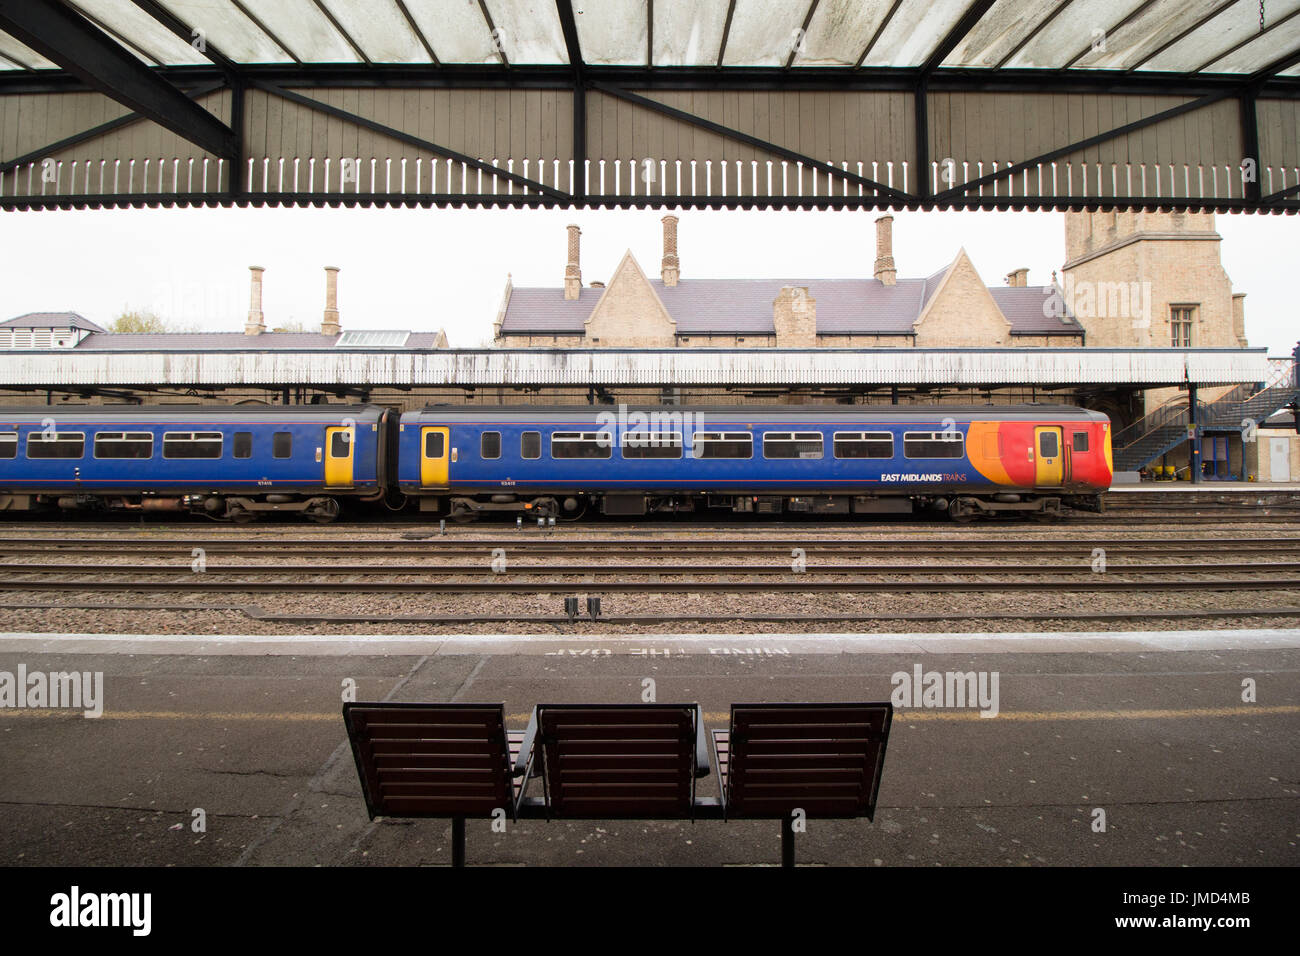 An East Midlands Train pictured at Lincoln Train Station - Stock Image